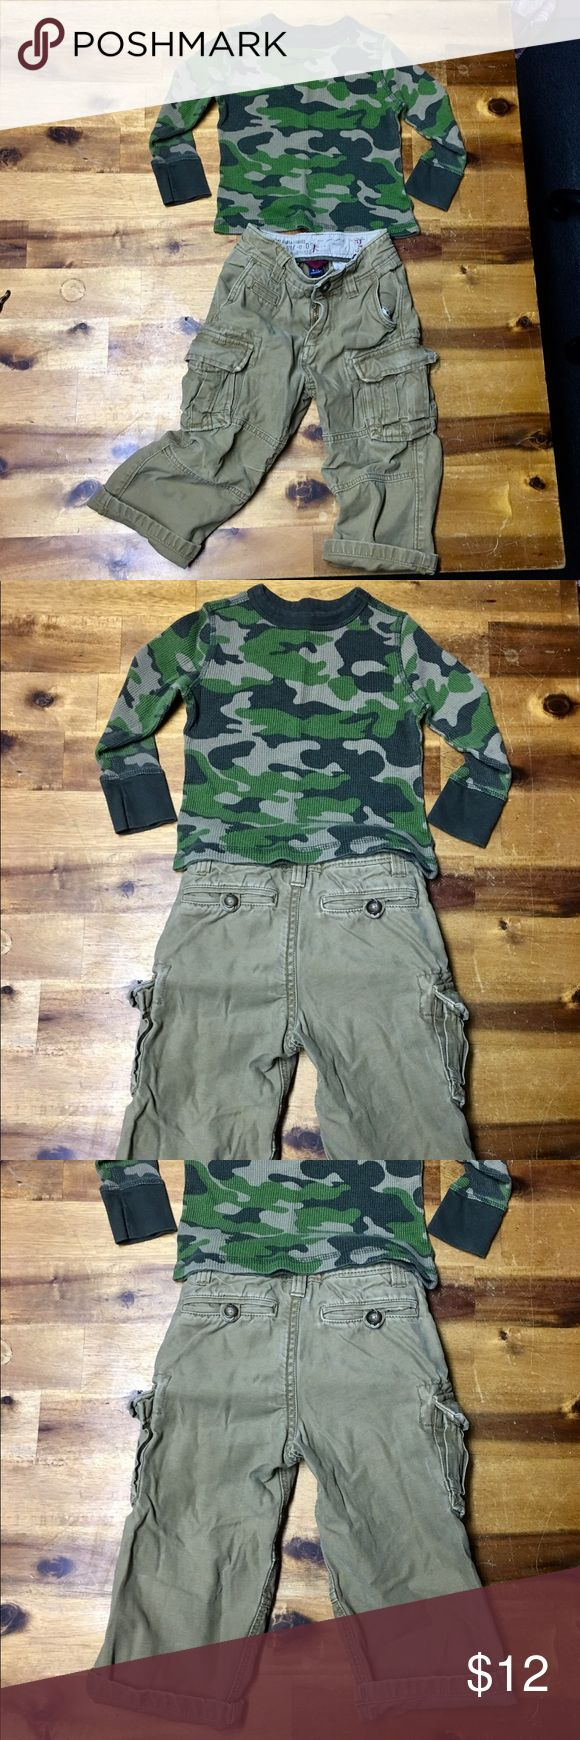 BUNDLE - Boys Gap Cargo Pants & Old Navy Top Boys Bundle 2T outfit. Gap Cargo Pants. Old Navy Thermal Camouflage Long Sleeve Top in good used condition. No stains or holes. Adorable. GAP Other